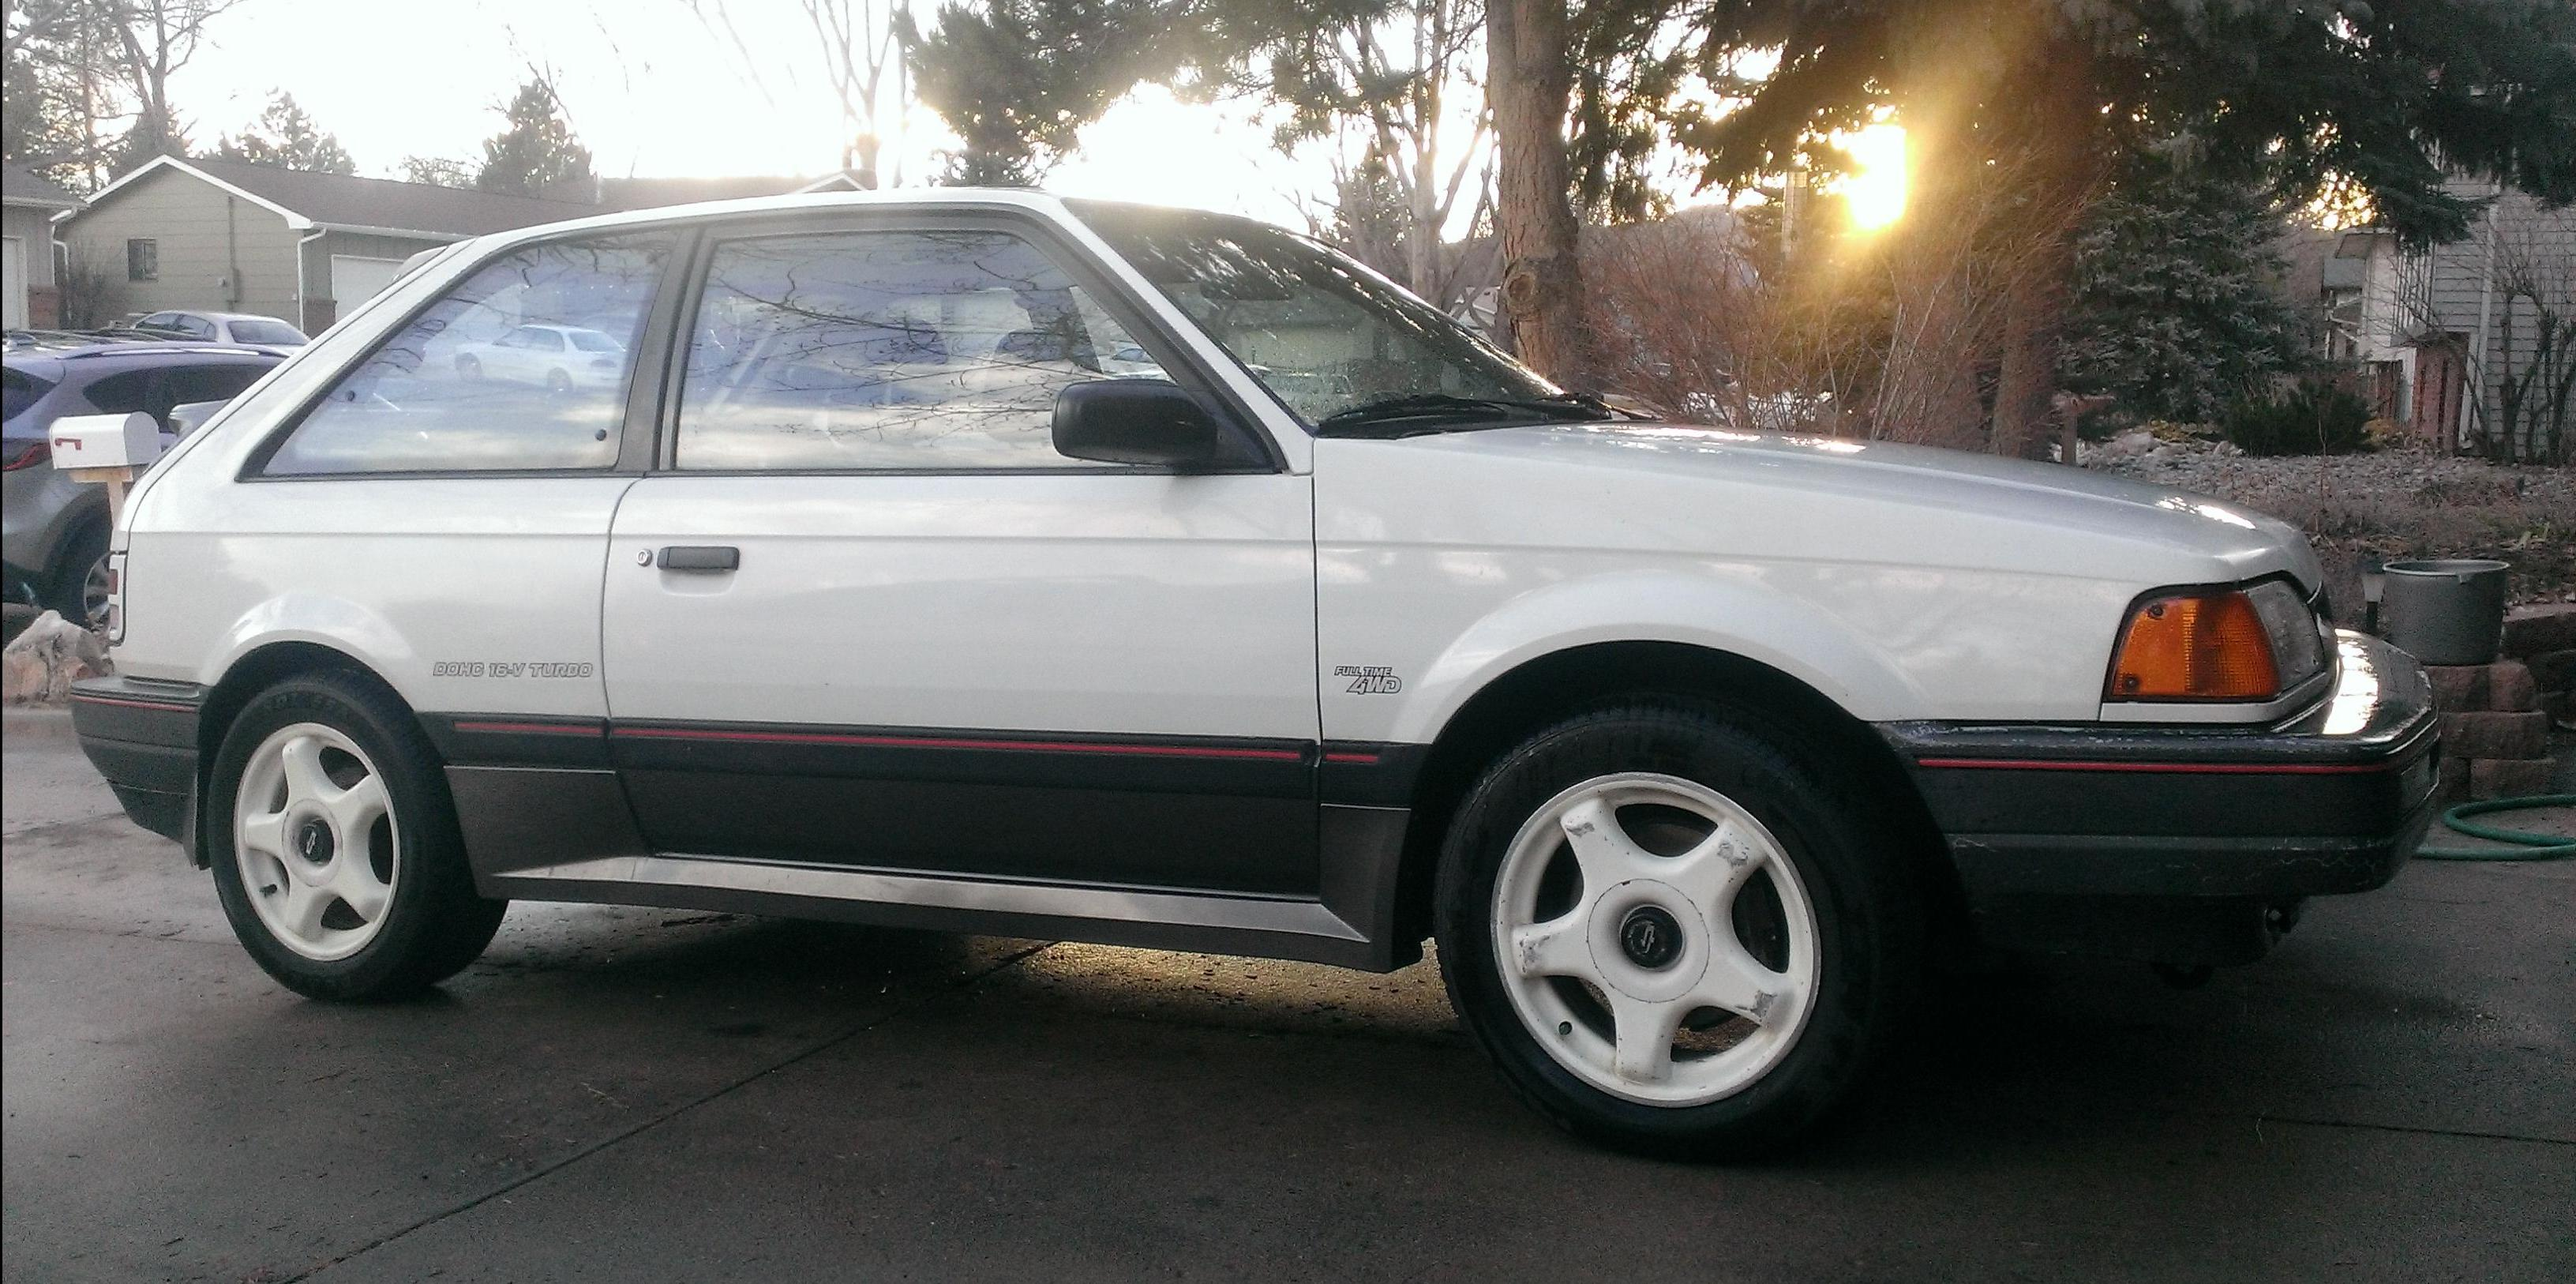 peterpeterson's 1988 Mazda 323